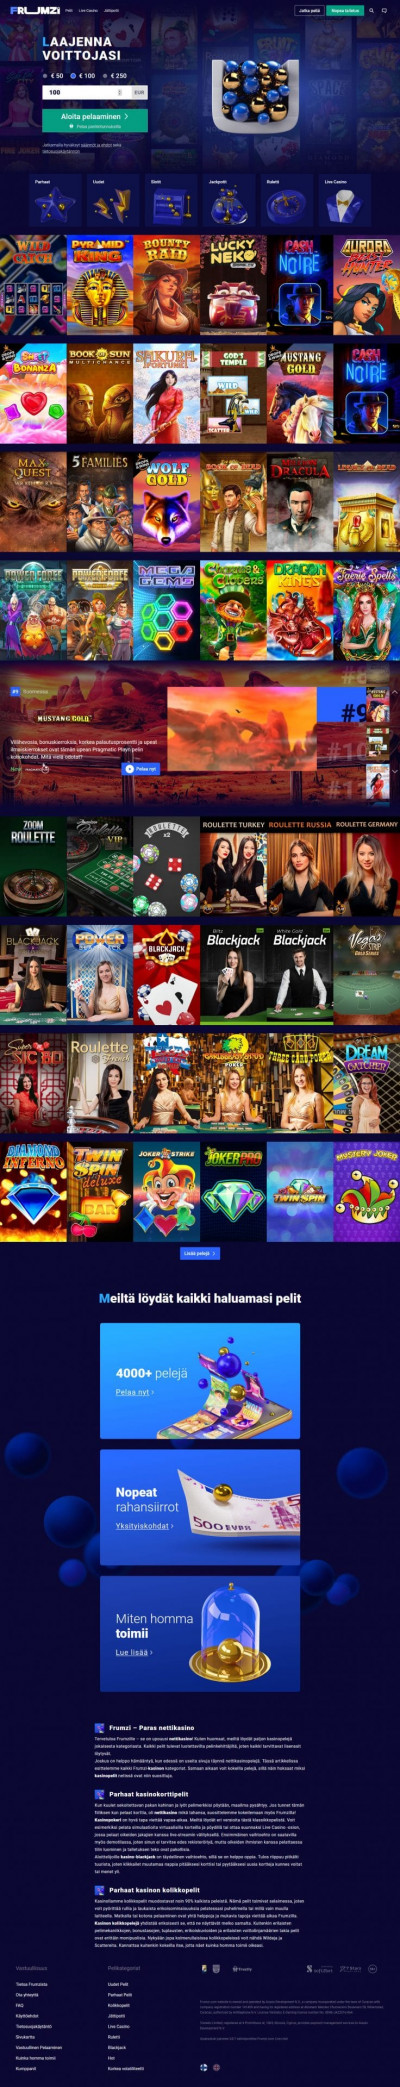 Frumzi Casino Screenshot